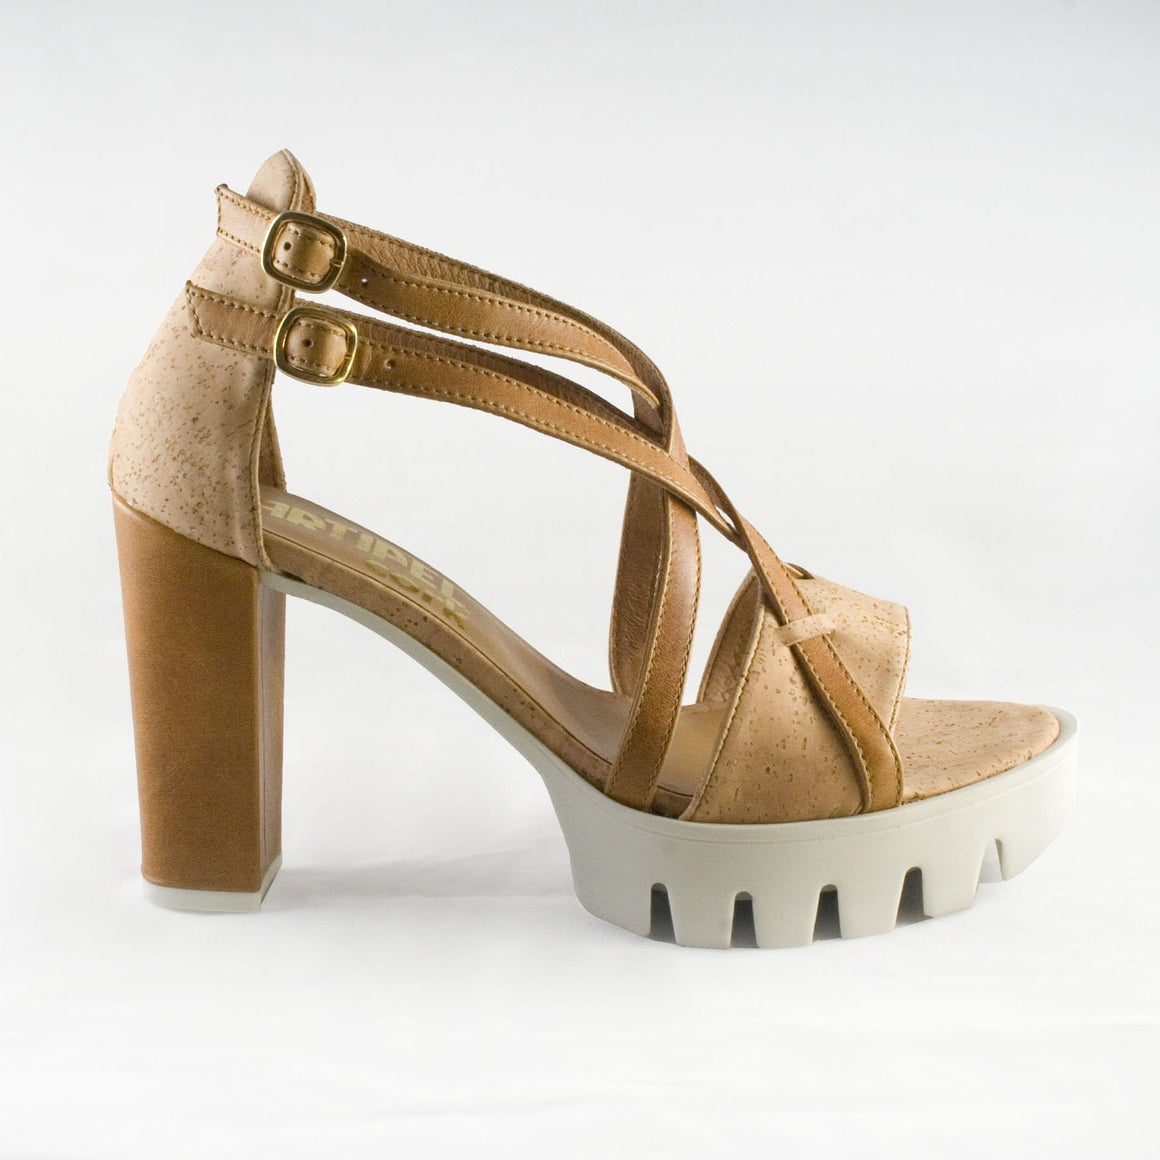 Cork and Leather Heeled Sandals - Naturally Anti-Microbial Hypoallergenic Sustainable Eco-Friendly Cork